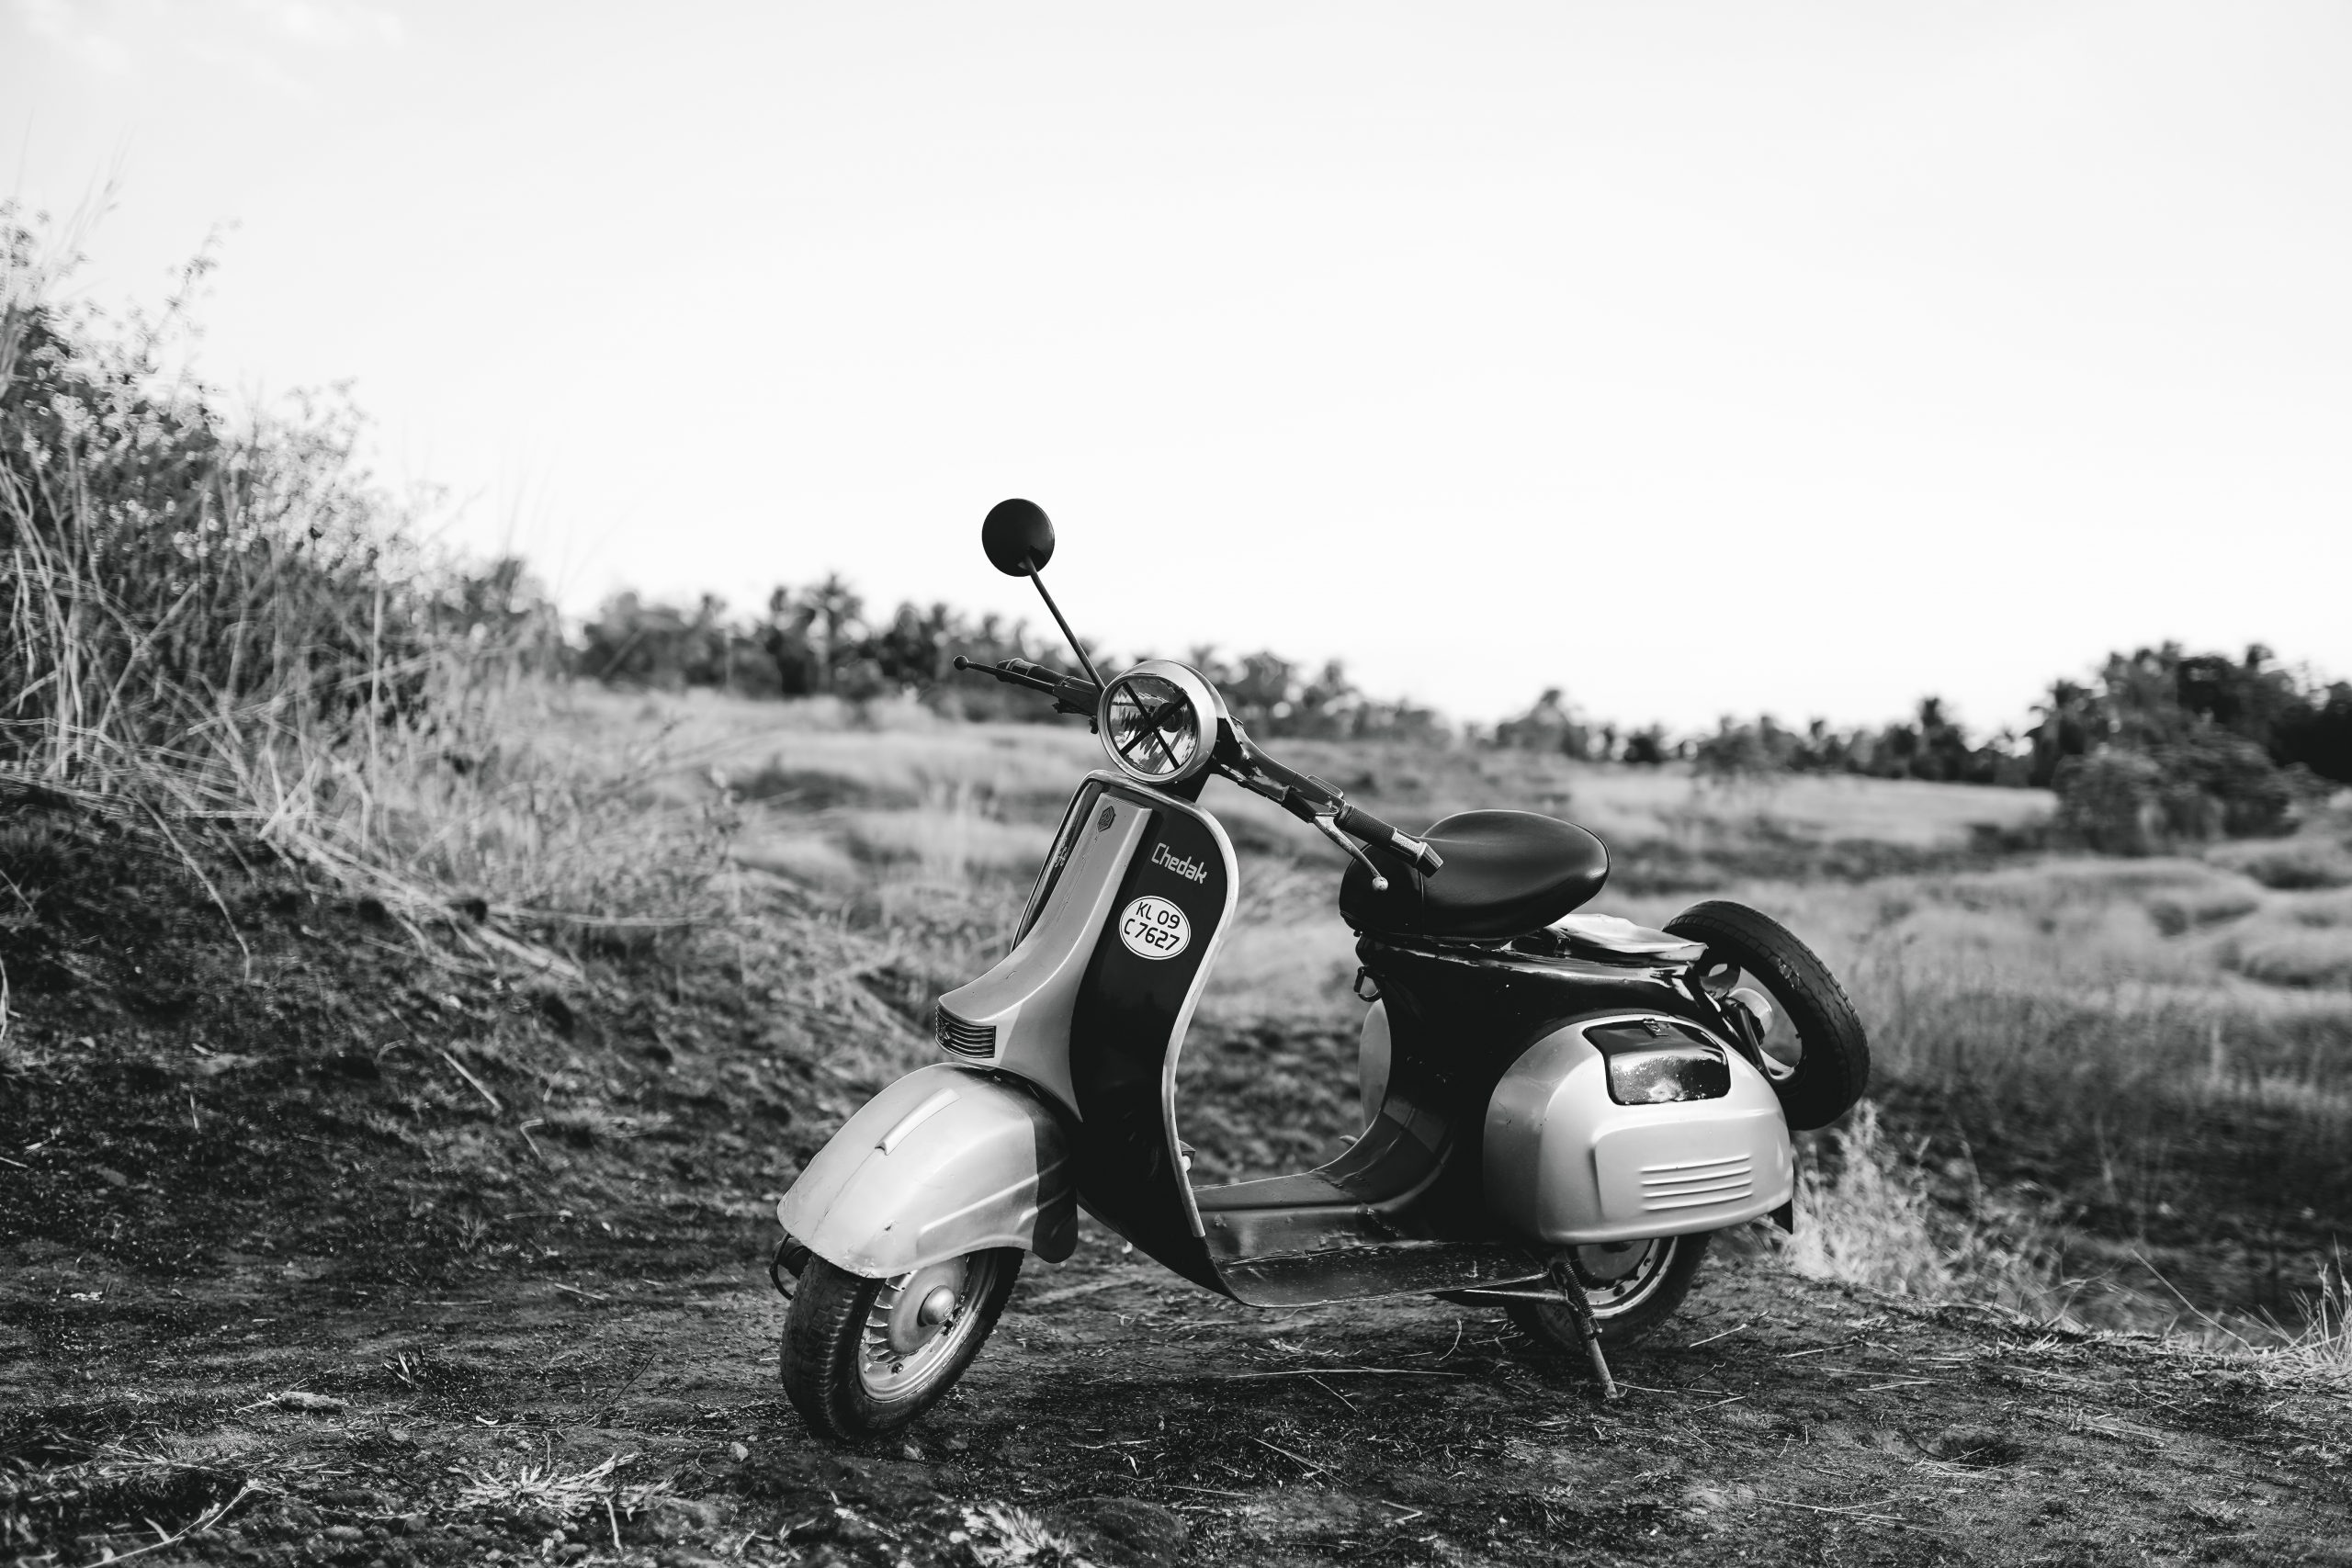 An old scooter in black and white.